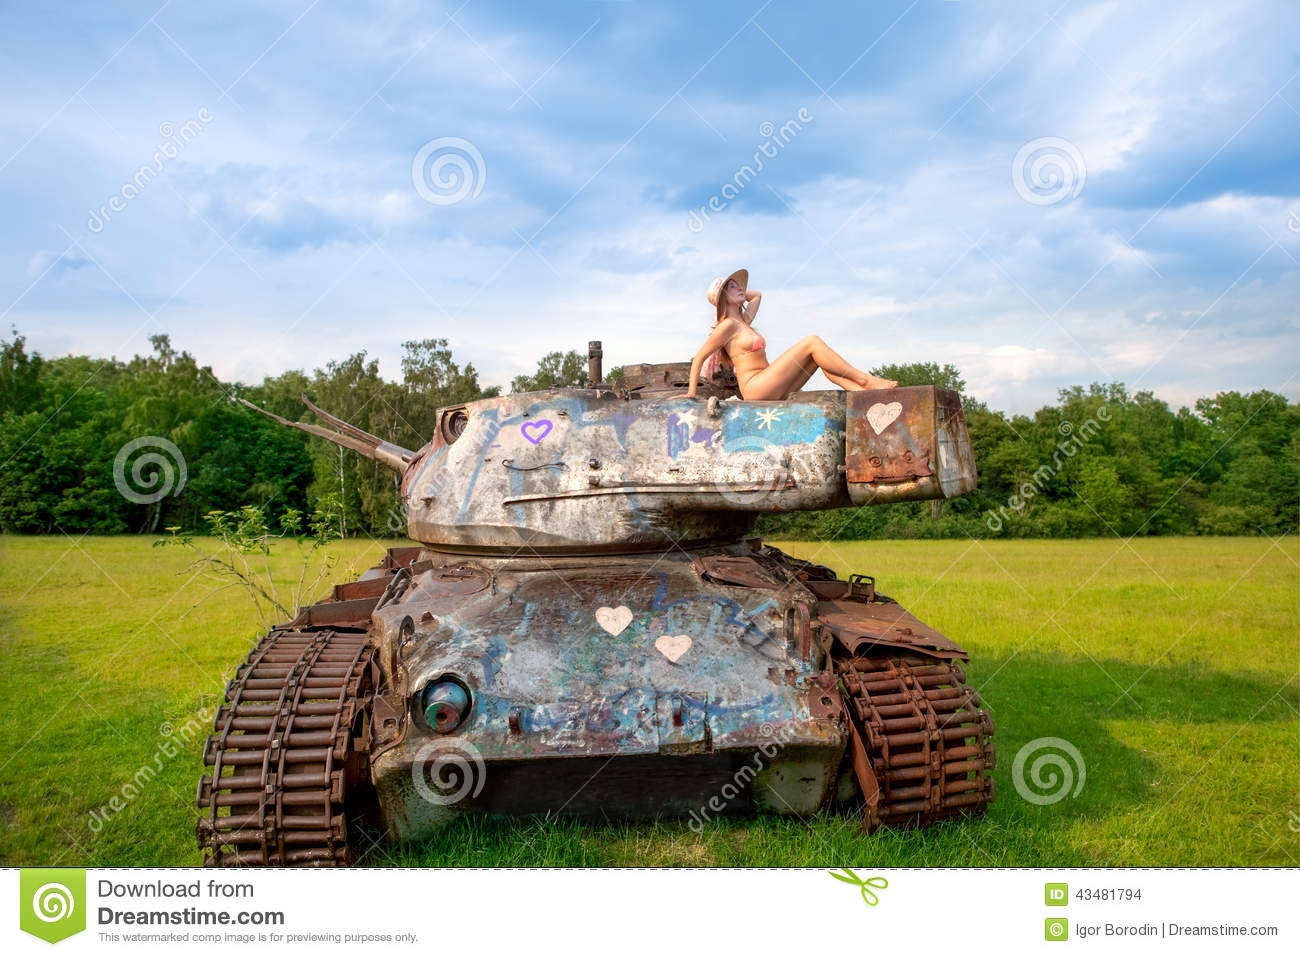 Young Woman Posing On Army Tank. Stock Photo - Image: 43481794